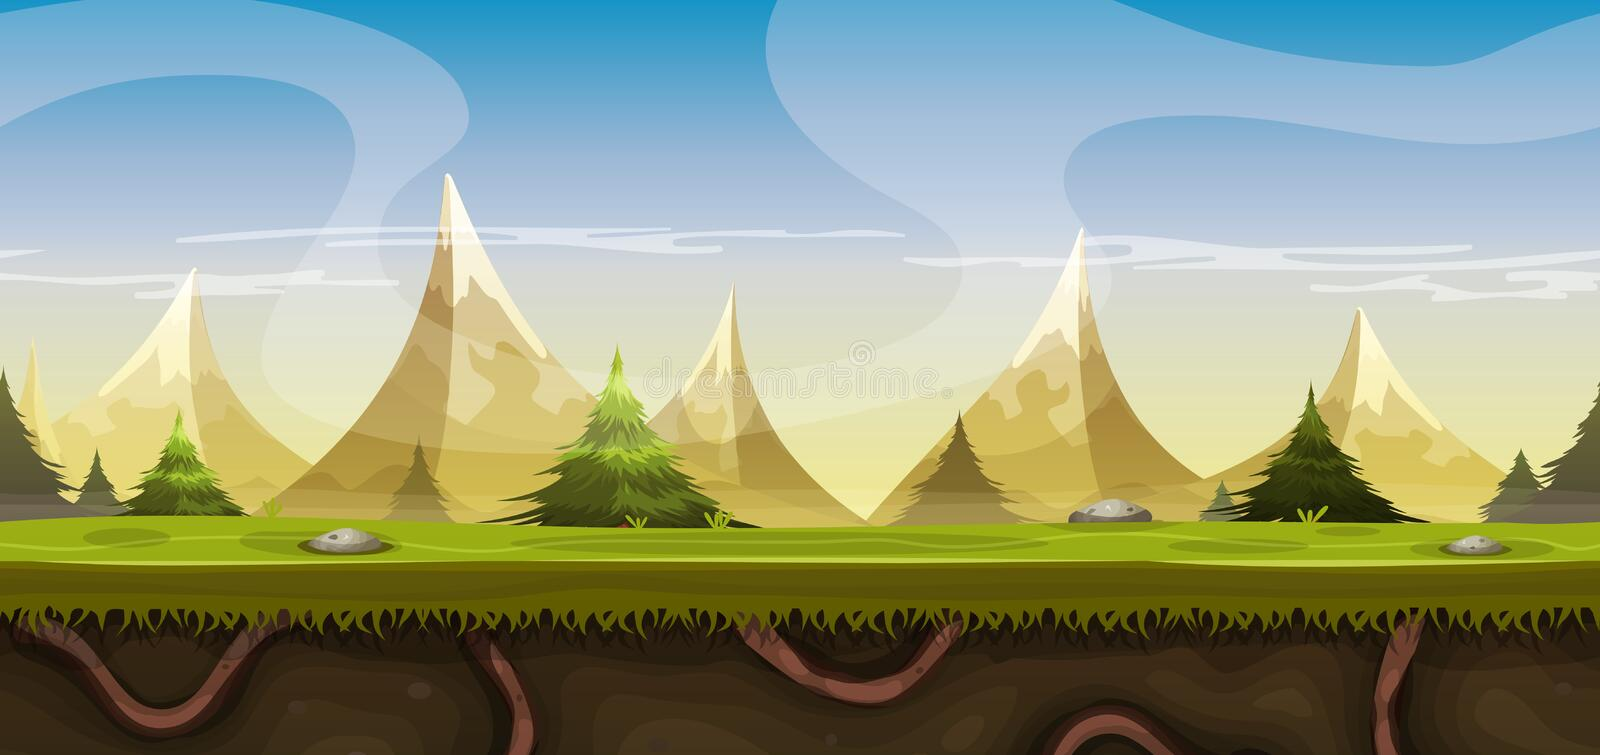 Seamless Mountains Landscape For Game Ui vector illustration